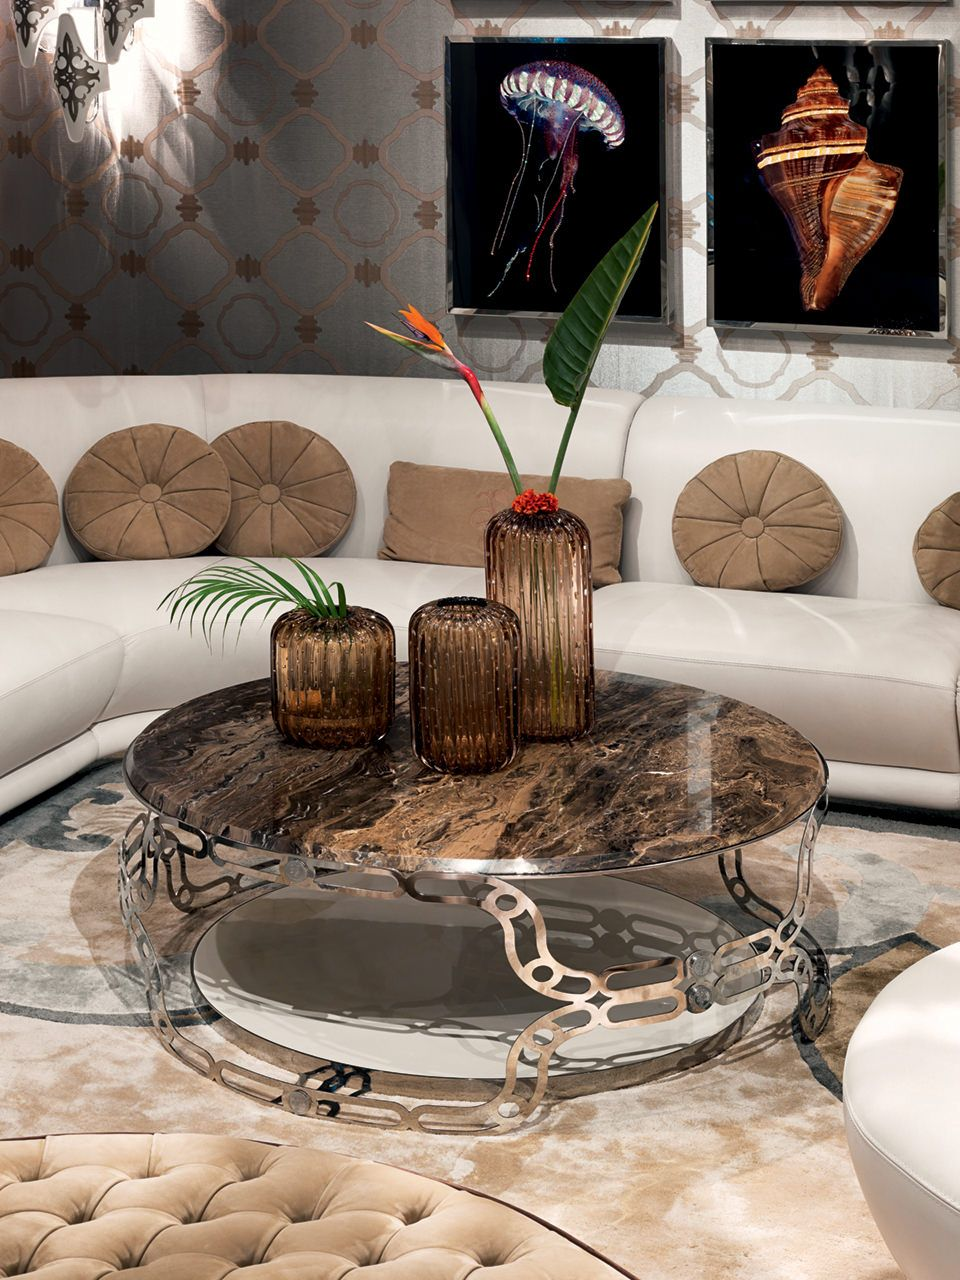 Living Room Coffee Table Sonhos Livingroom Visionnaire Home Philosophy Amazing Home